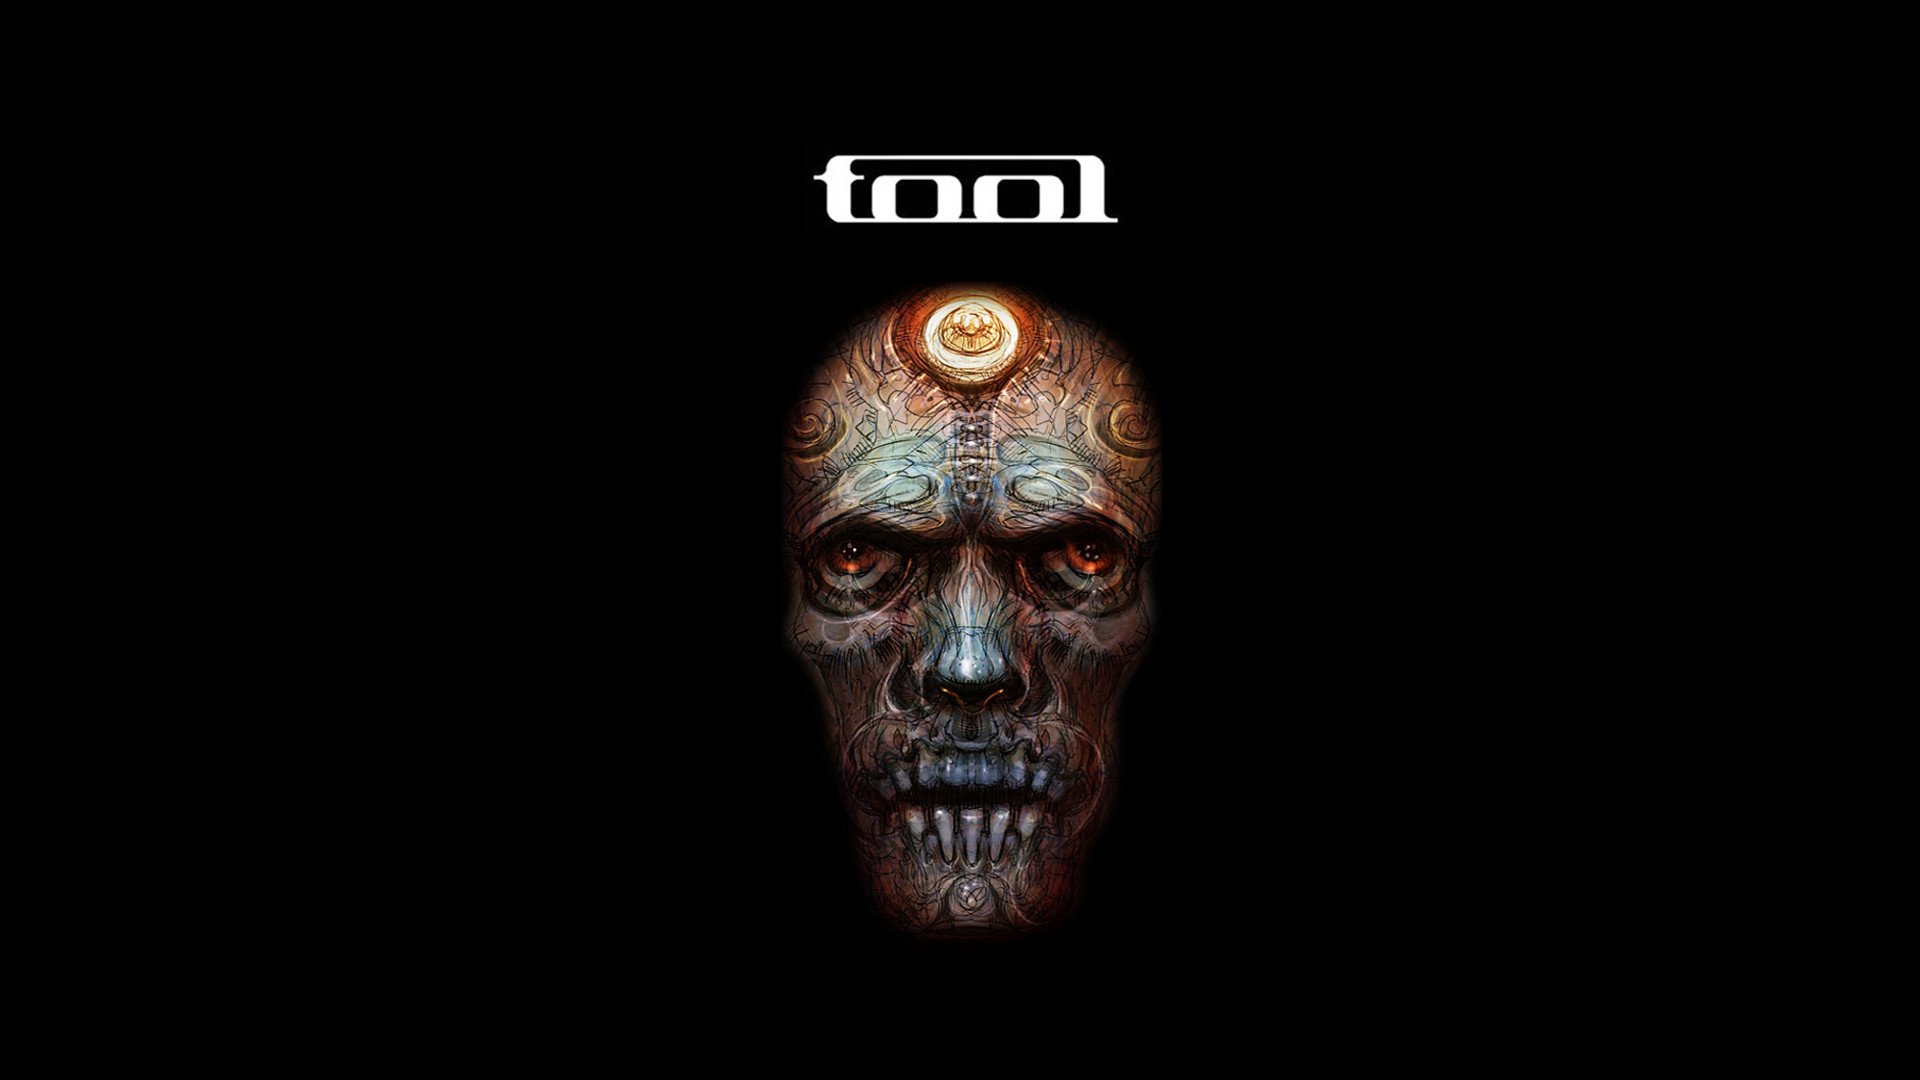 1920x1080 Tool Music Some Best Chosen HD Wallpapers Pictures Images 1600A 900